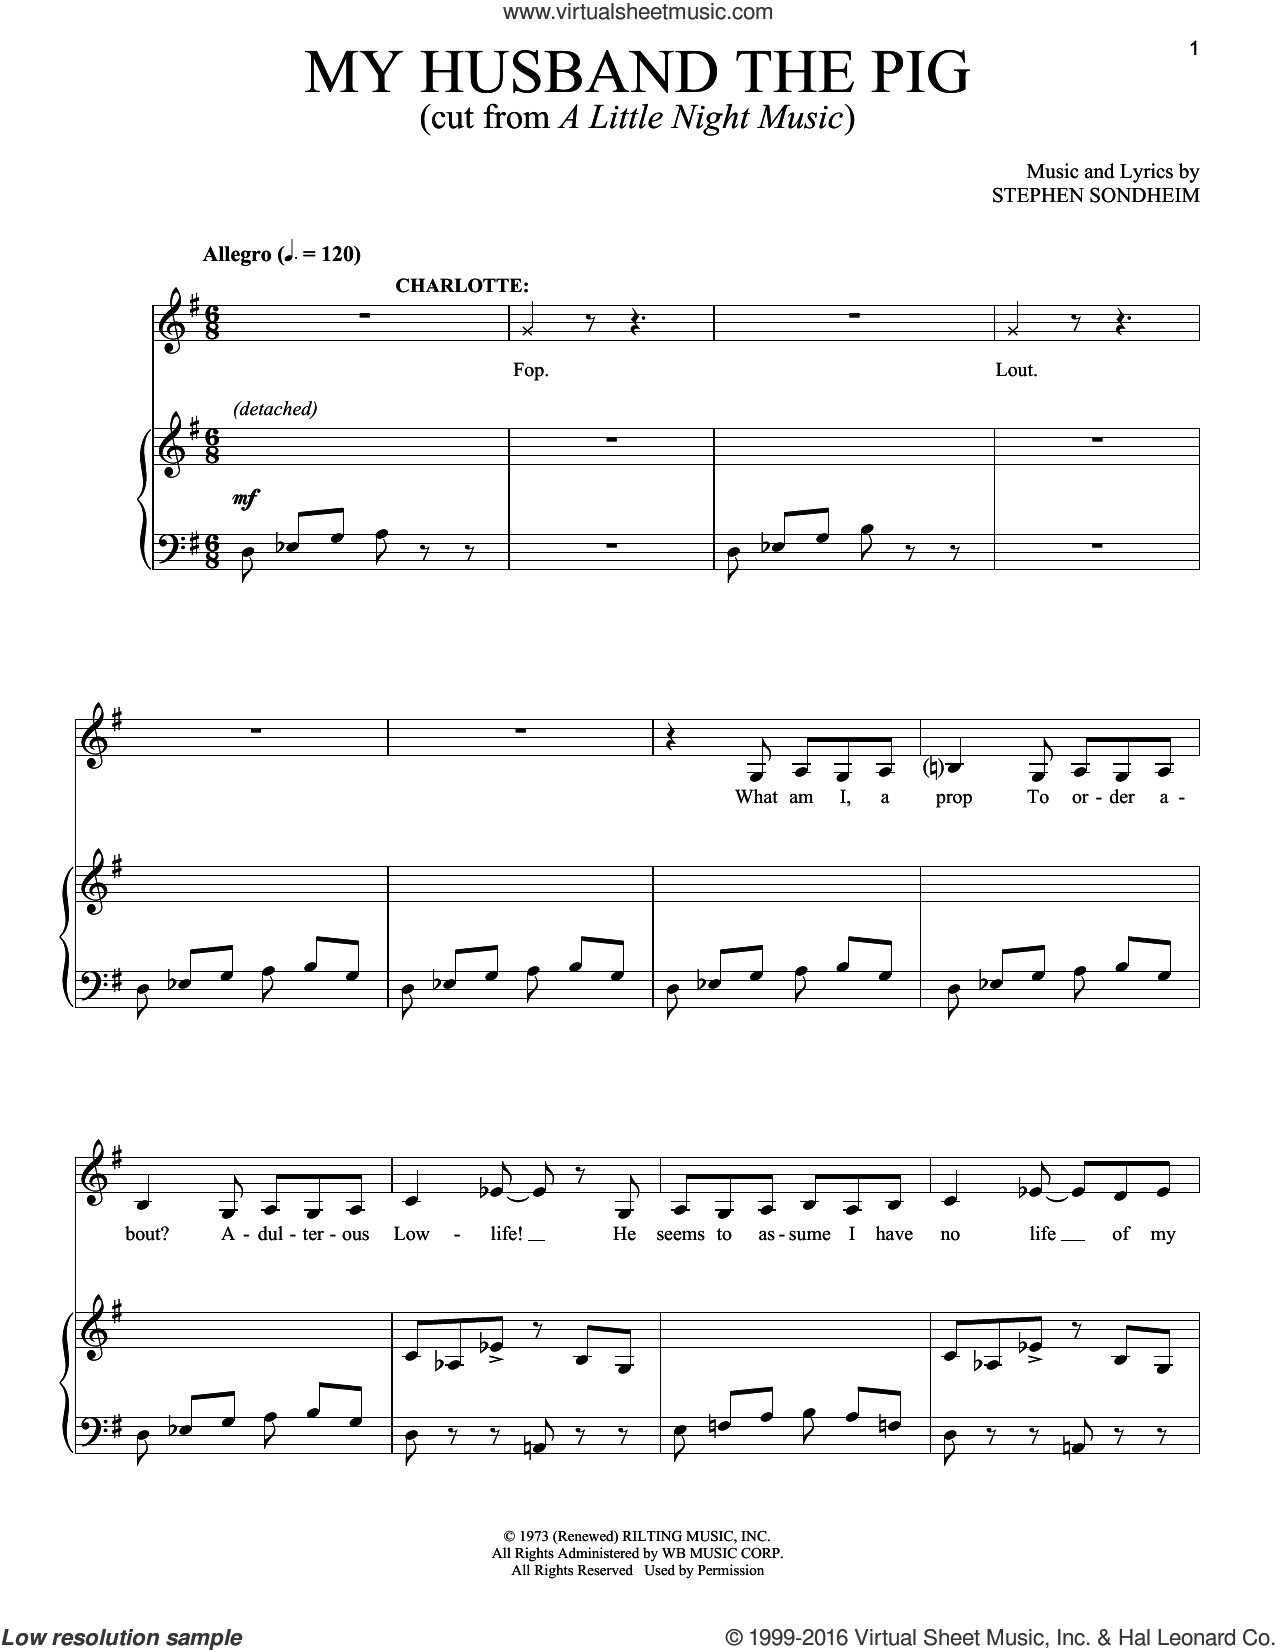 My Husband The Pig sheet music for voice and piano by Stephen Sondheim, intermediate skill level